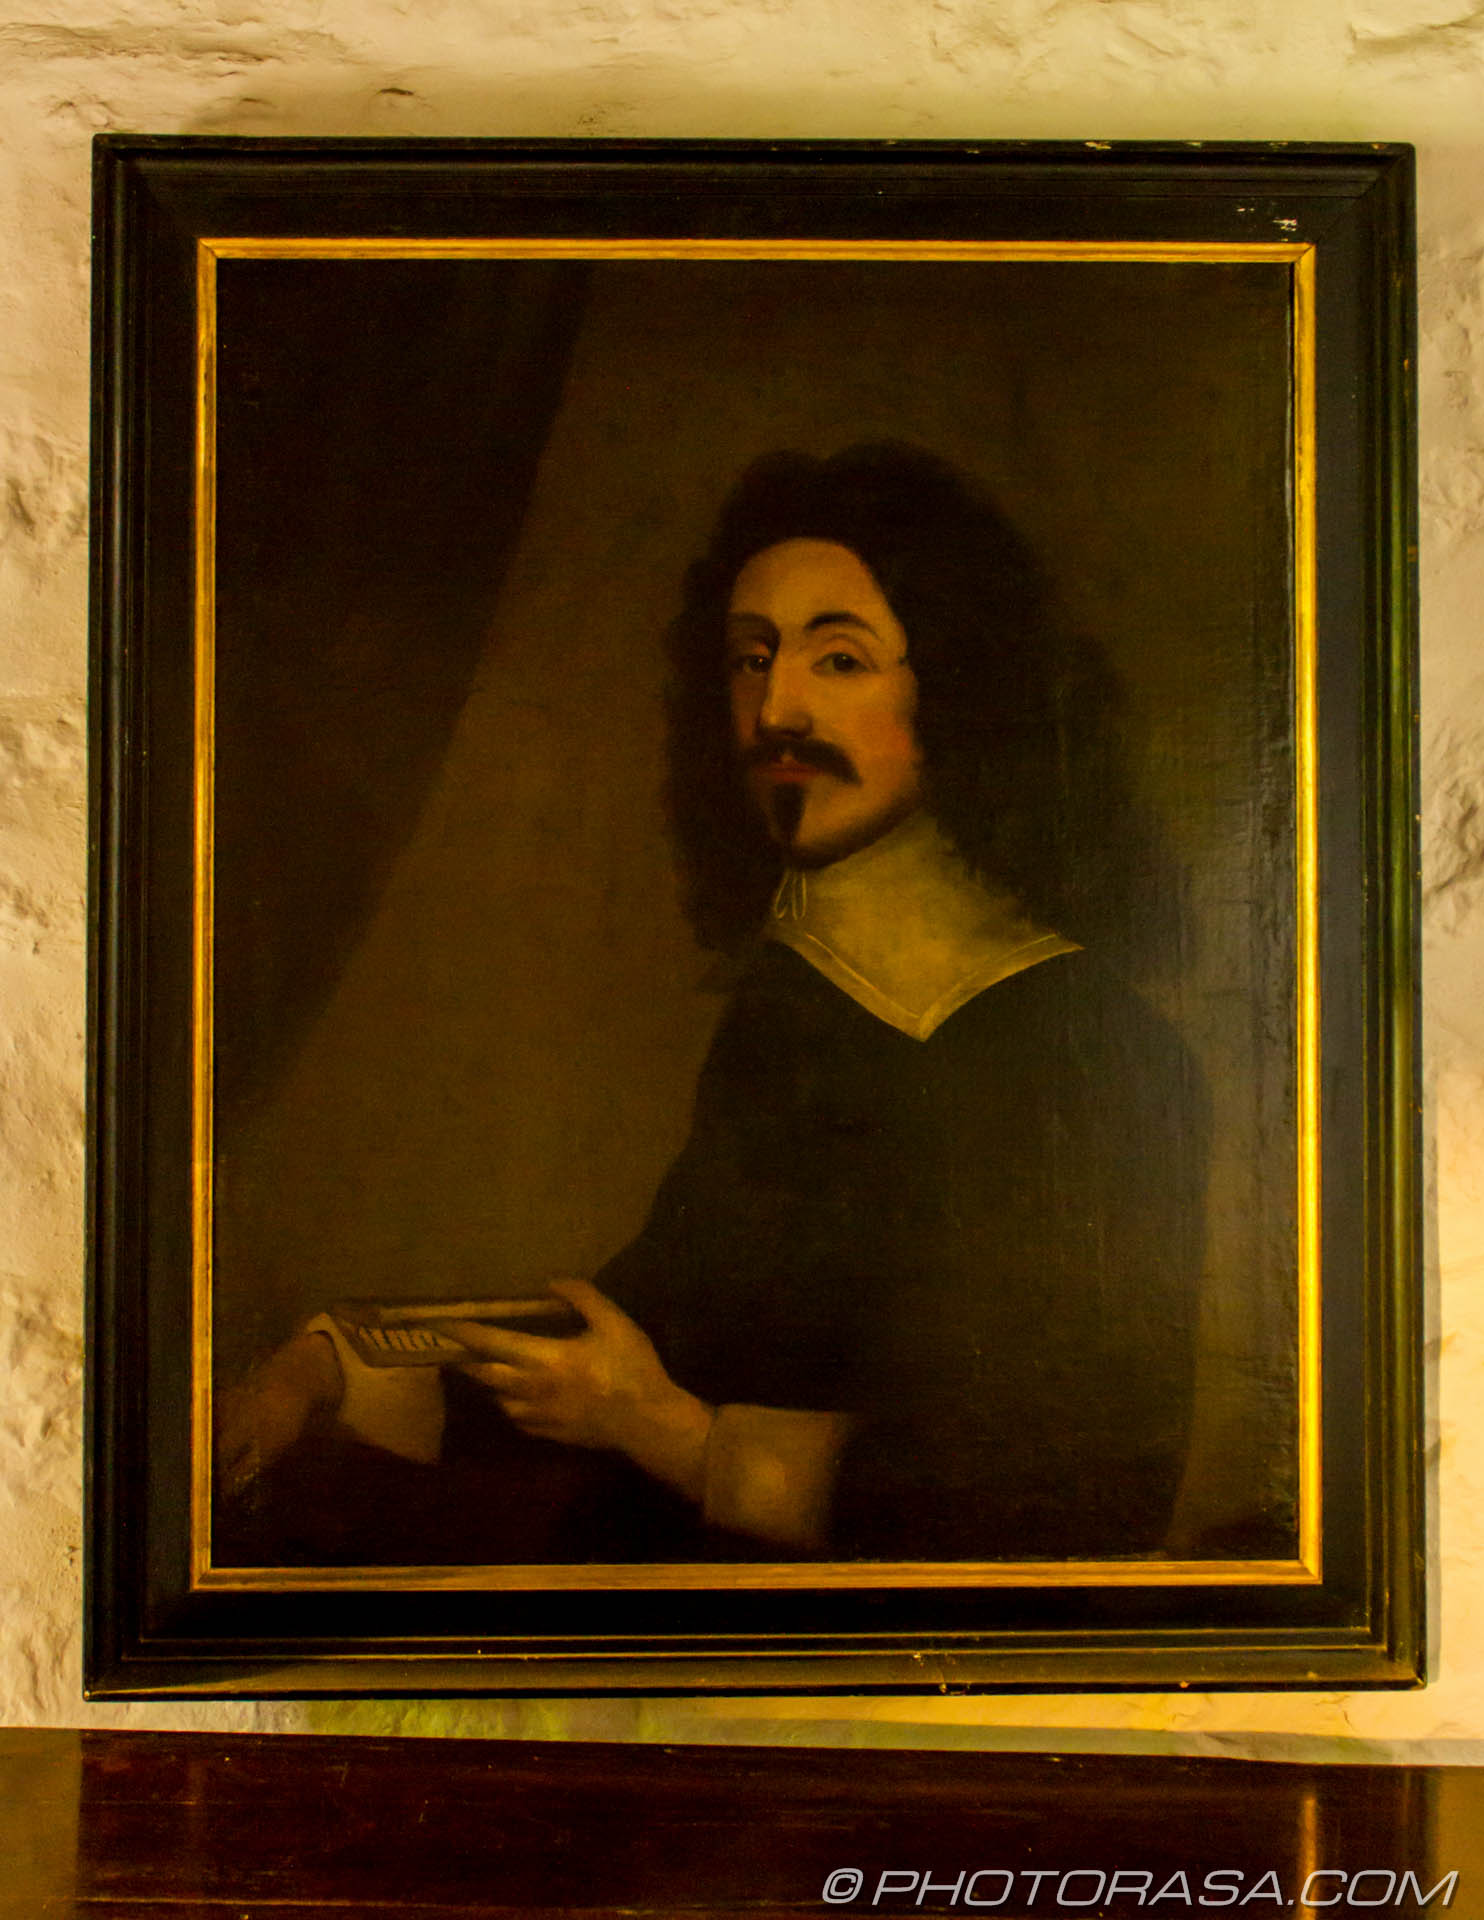 http://photorasa.com/stoneacre-house-paintings/17th-century-painting-of-protestant-priest-holding-a-book/